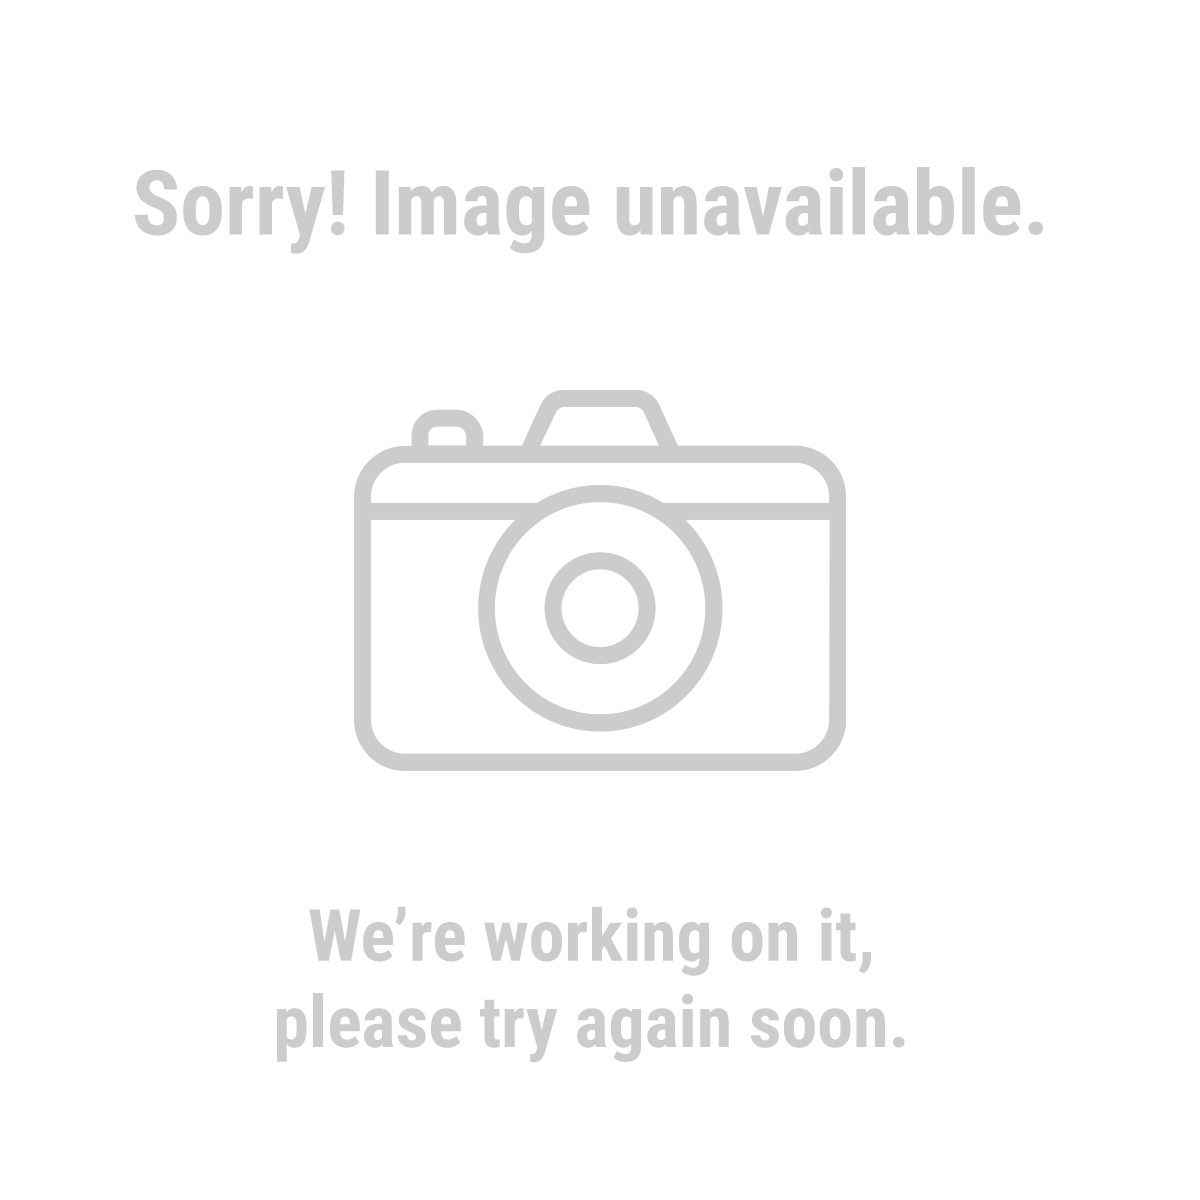 Western Safety 94432 25 Pocket Mechanic's Tool Bag